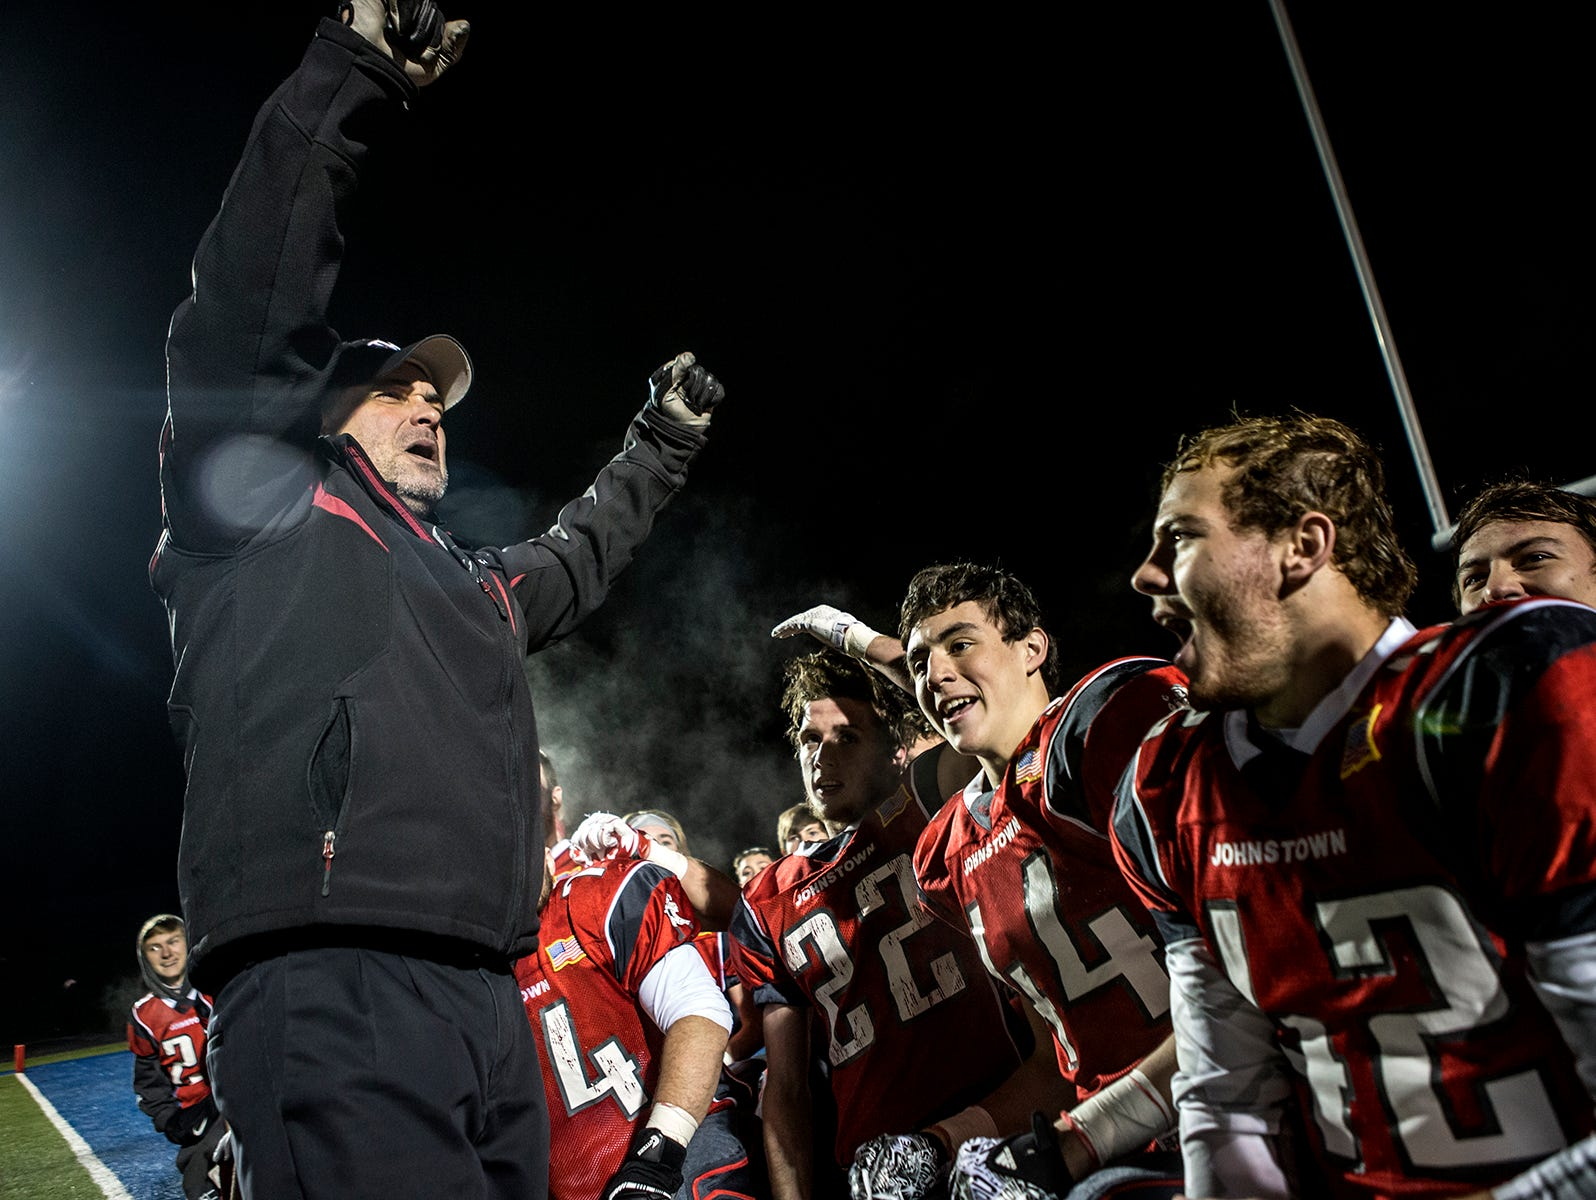 Johnstown's head coach Mike Carter celebrates with his team after they won the Division IV regional semifinals Saturday night. The Johnnies took on the St. Clairsville Red Devils winning 42-38. Johnstown will play Steubenville next week.